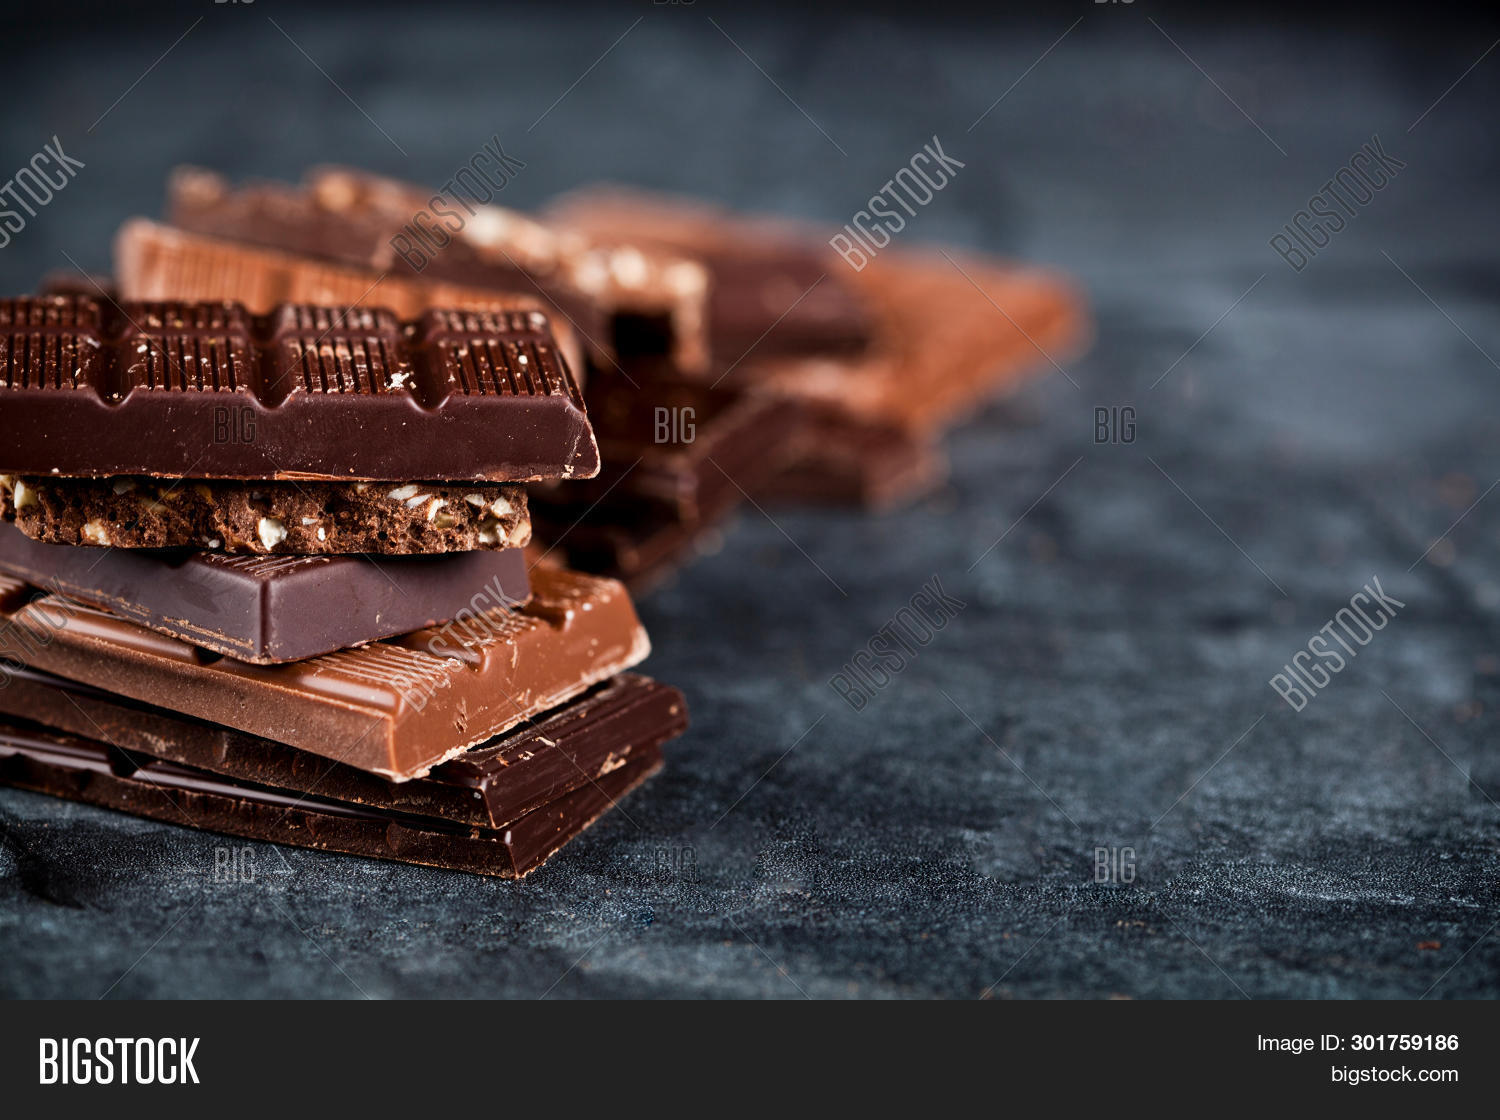 Chunks of broken chocolate stacked on black board. Chocolate bars pieces stack on black background. Sweet food photo concept with copy space.